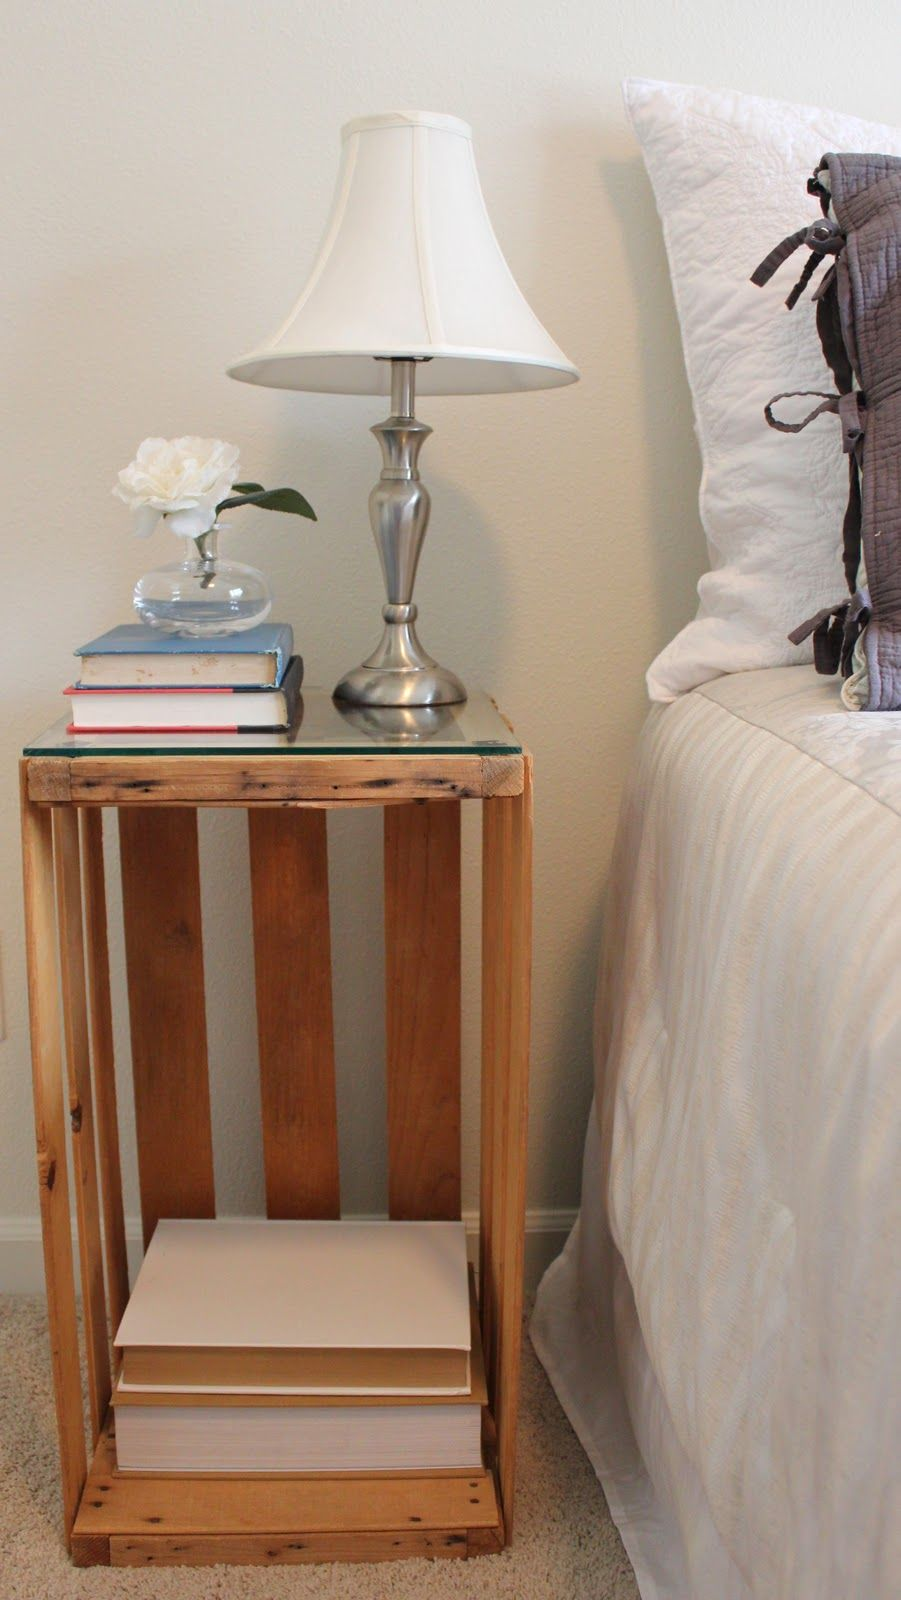 Marvelous Cheap Nightstand Ideas Part - 7: DIY - Fruit Crate Turned Night Stand / Bedside Table, With Glass Top